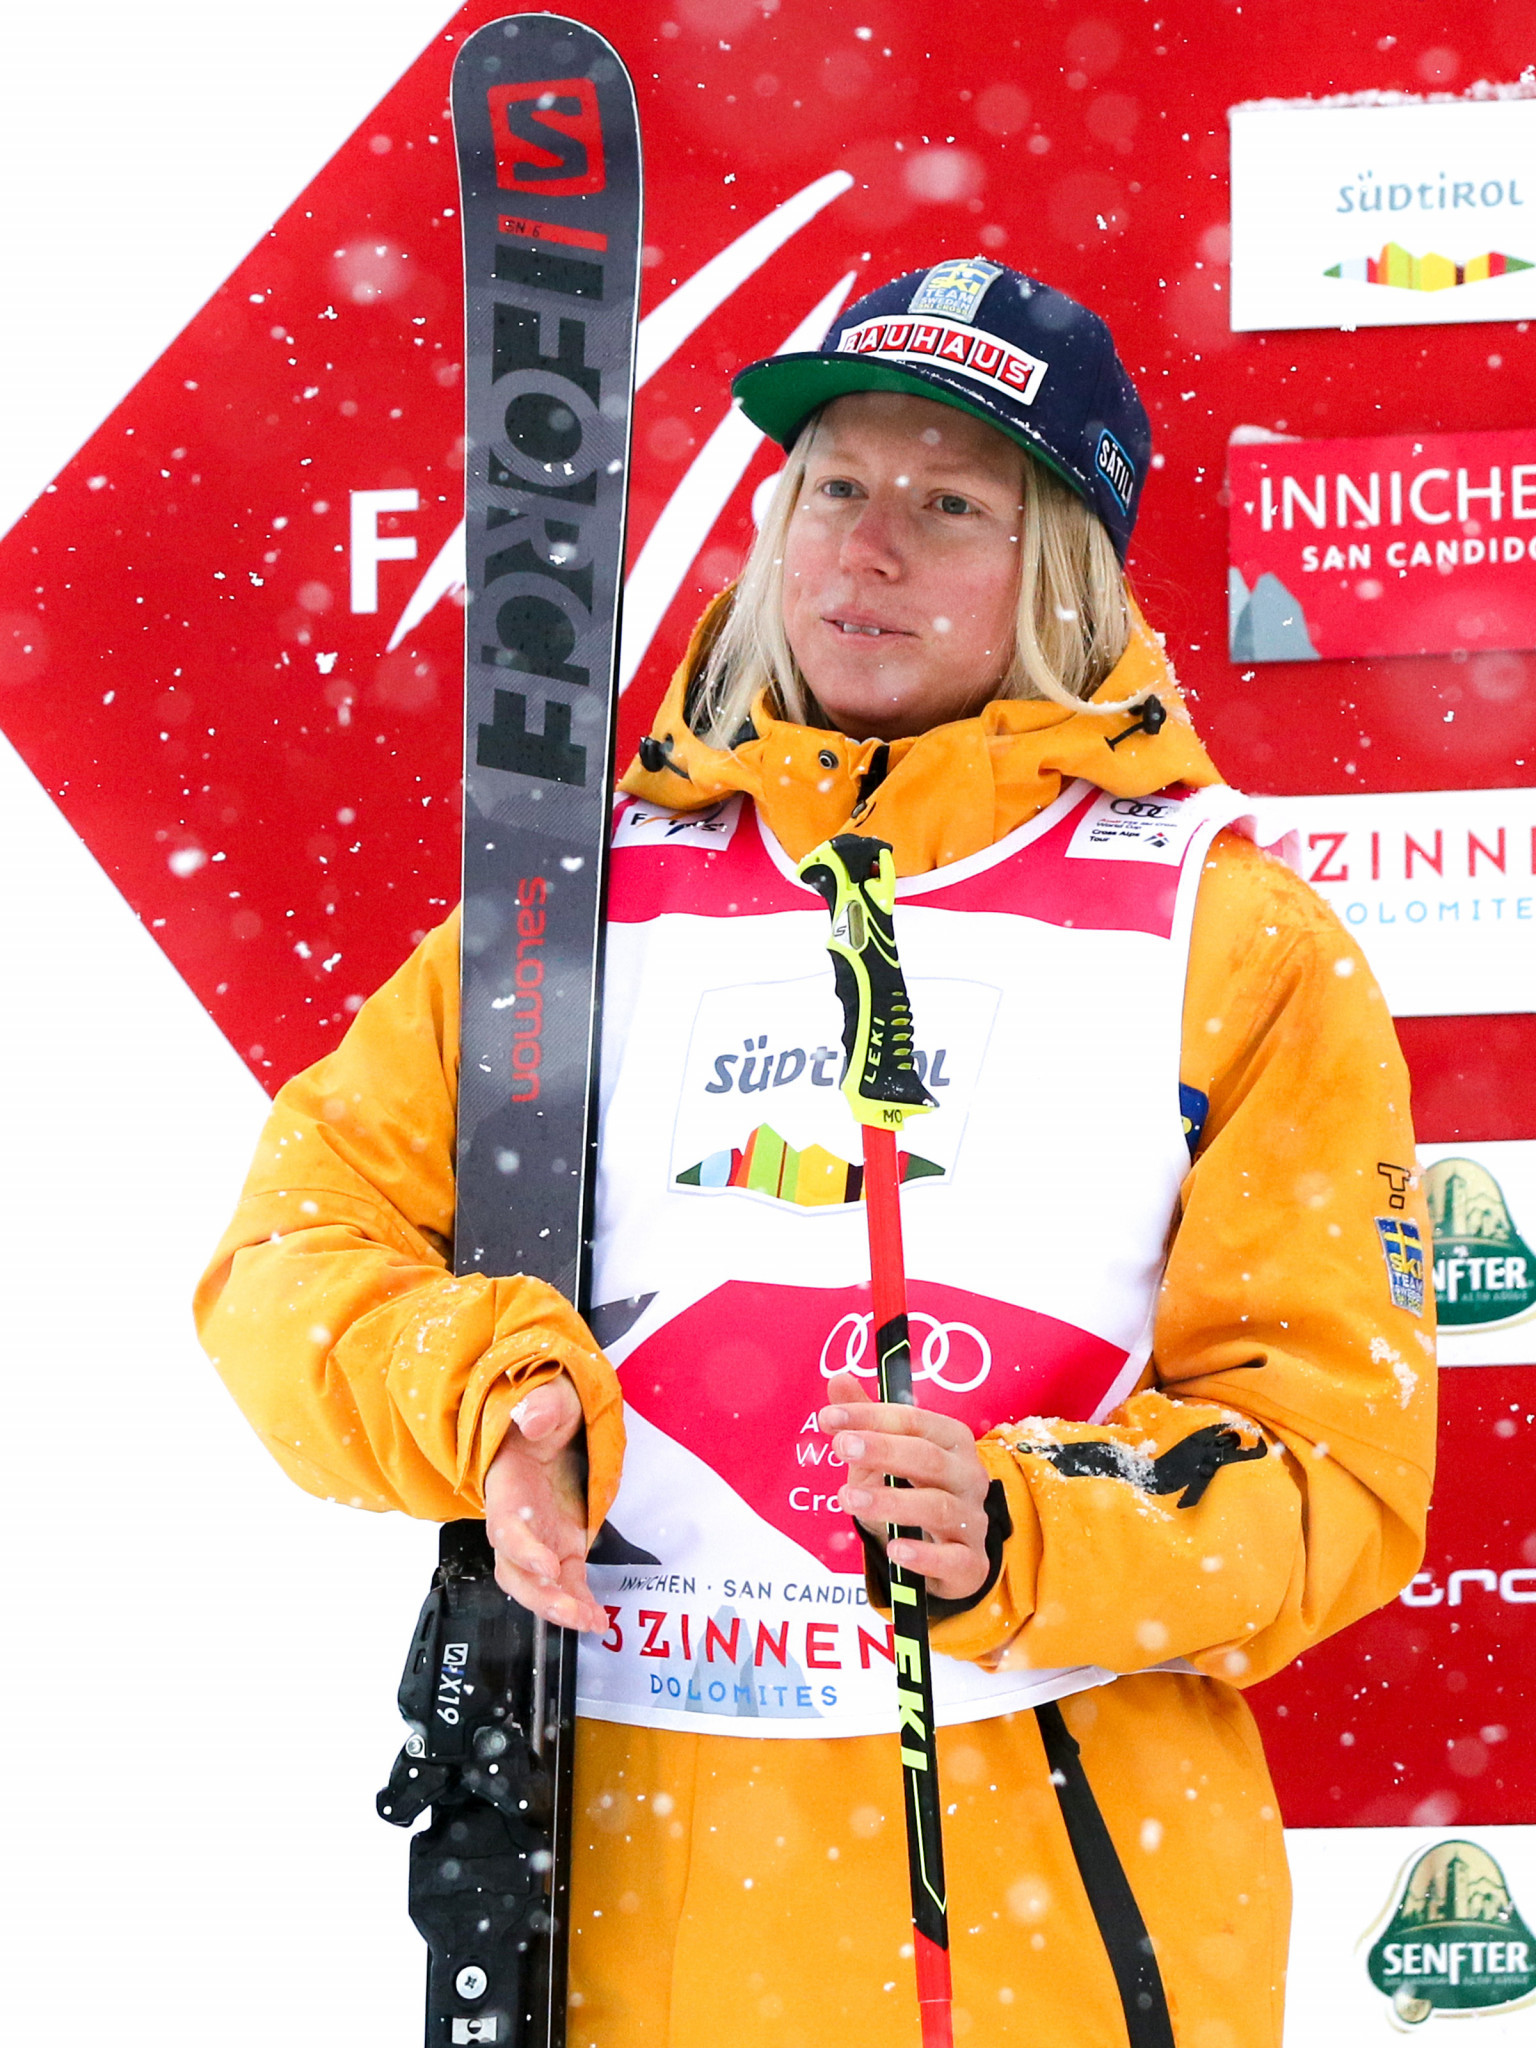 Sweden's Sandra Näslund won the women's event and heads the overall standings ©Getty Images